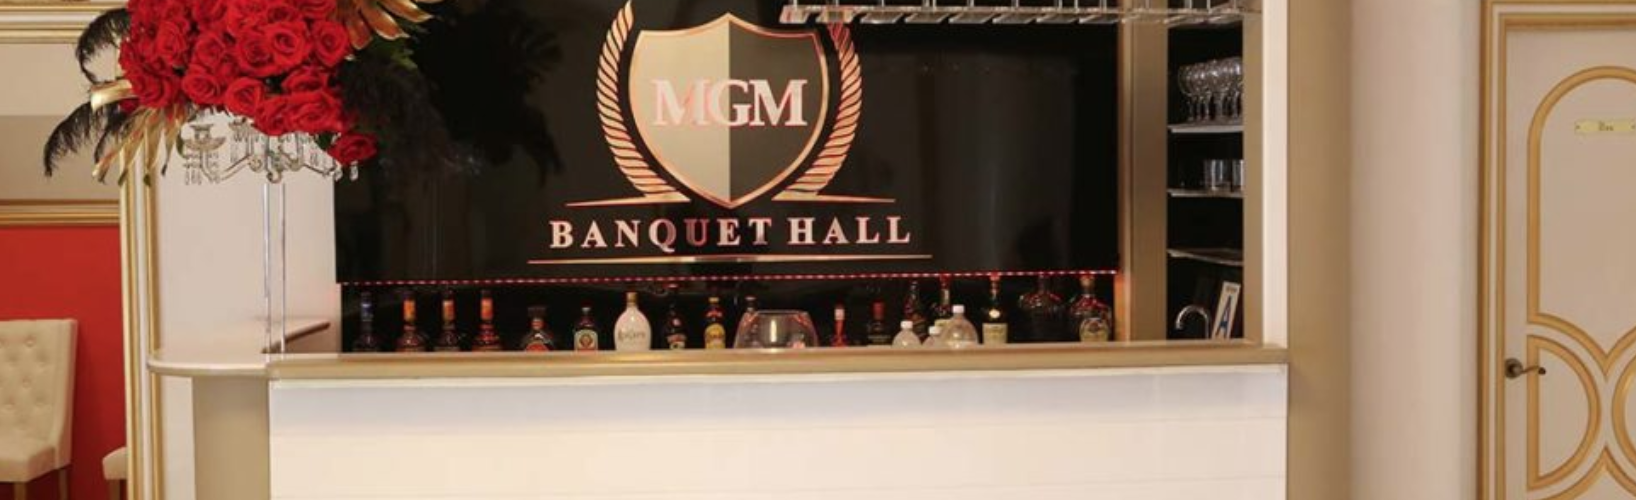 10-Reasons-to-Rent-a-Banquet-Hall